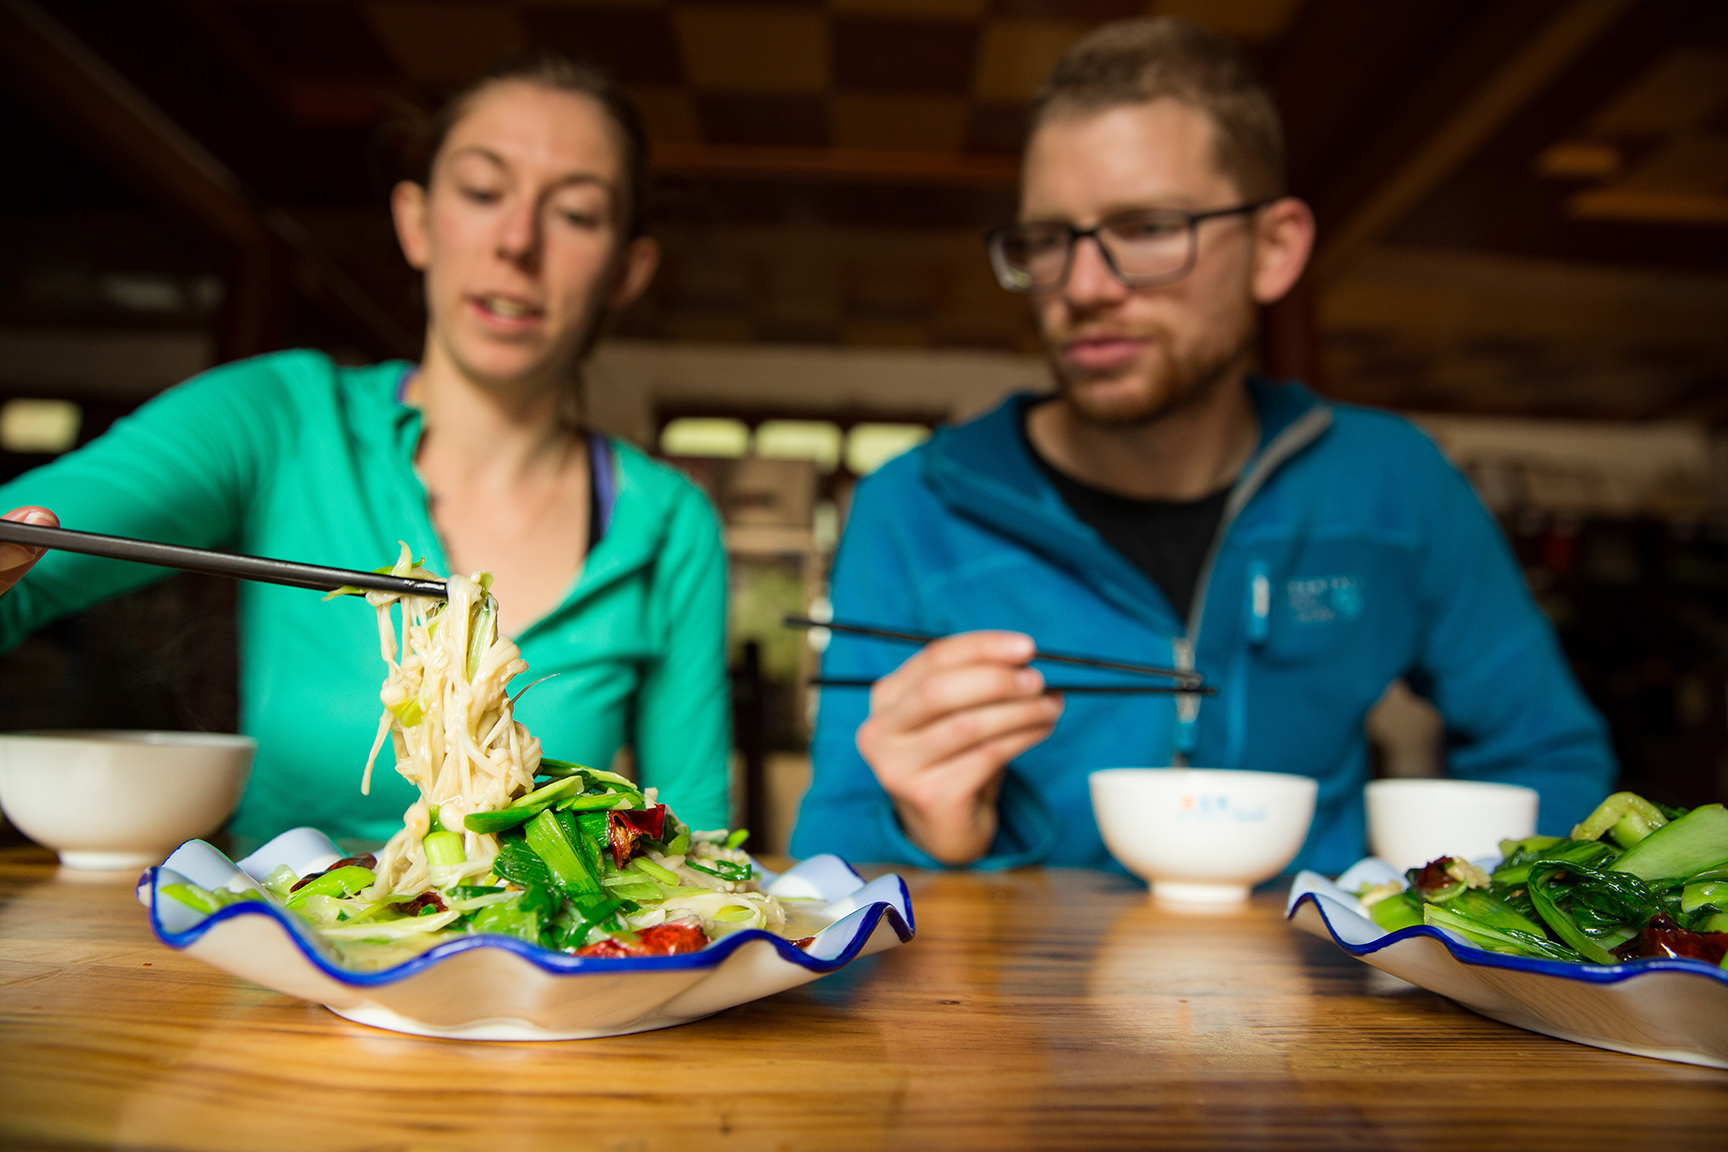 Danny Parker and Ashley Cracroft dig into a local mushroom and chives dish in Liming village  © Irene Yee/Lady Lockoff Photography